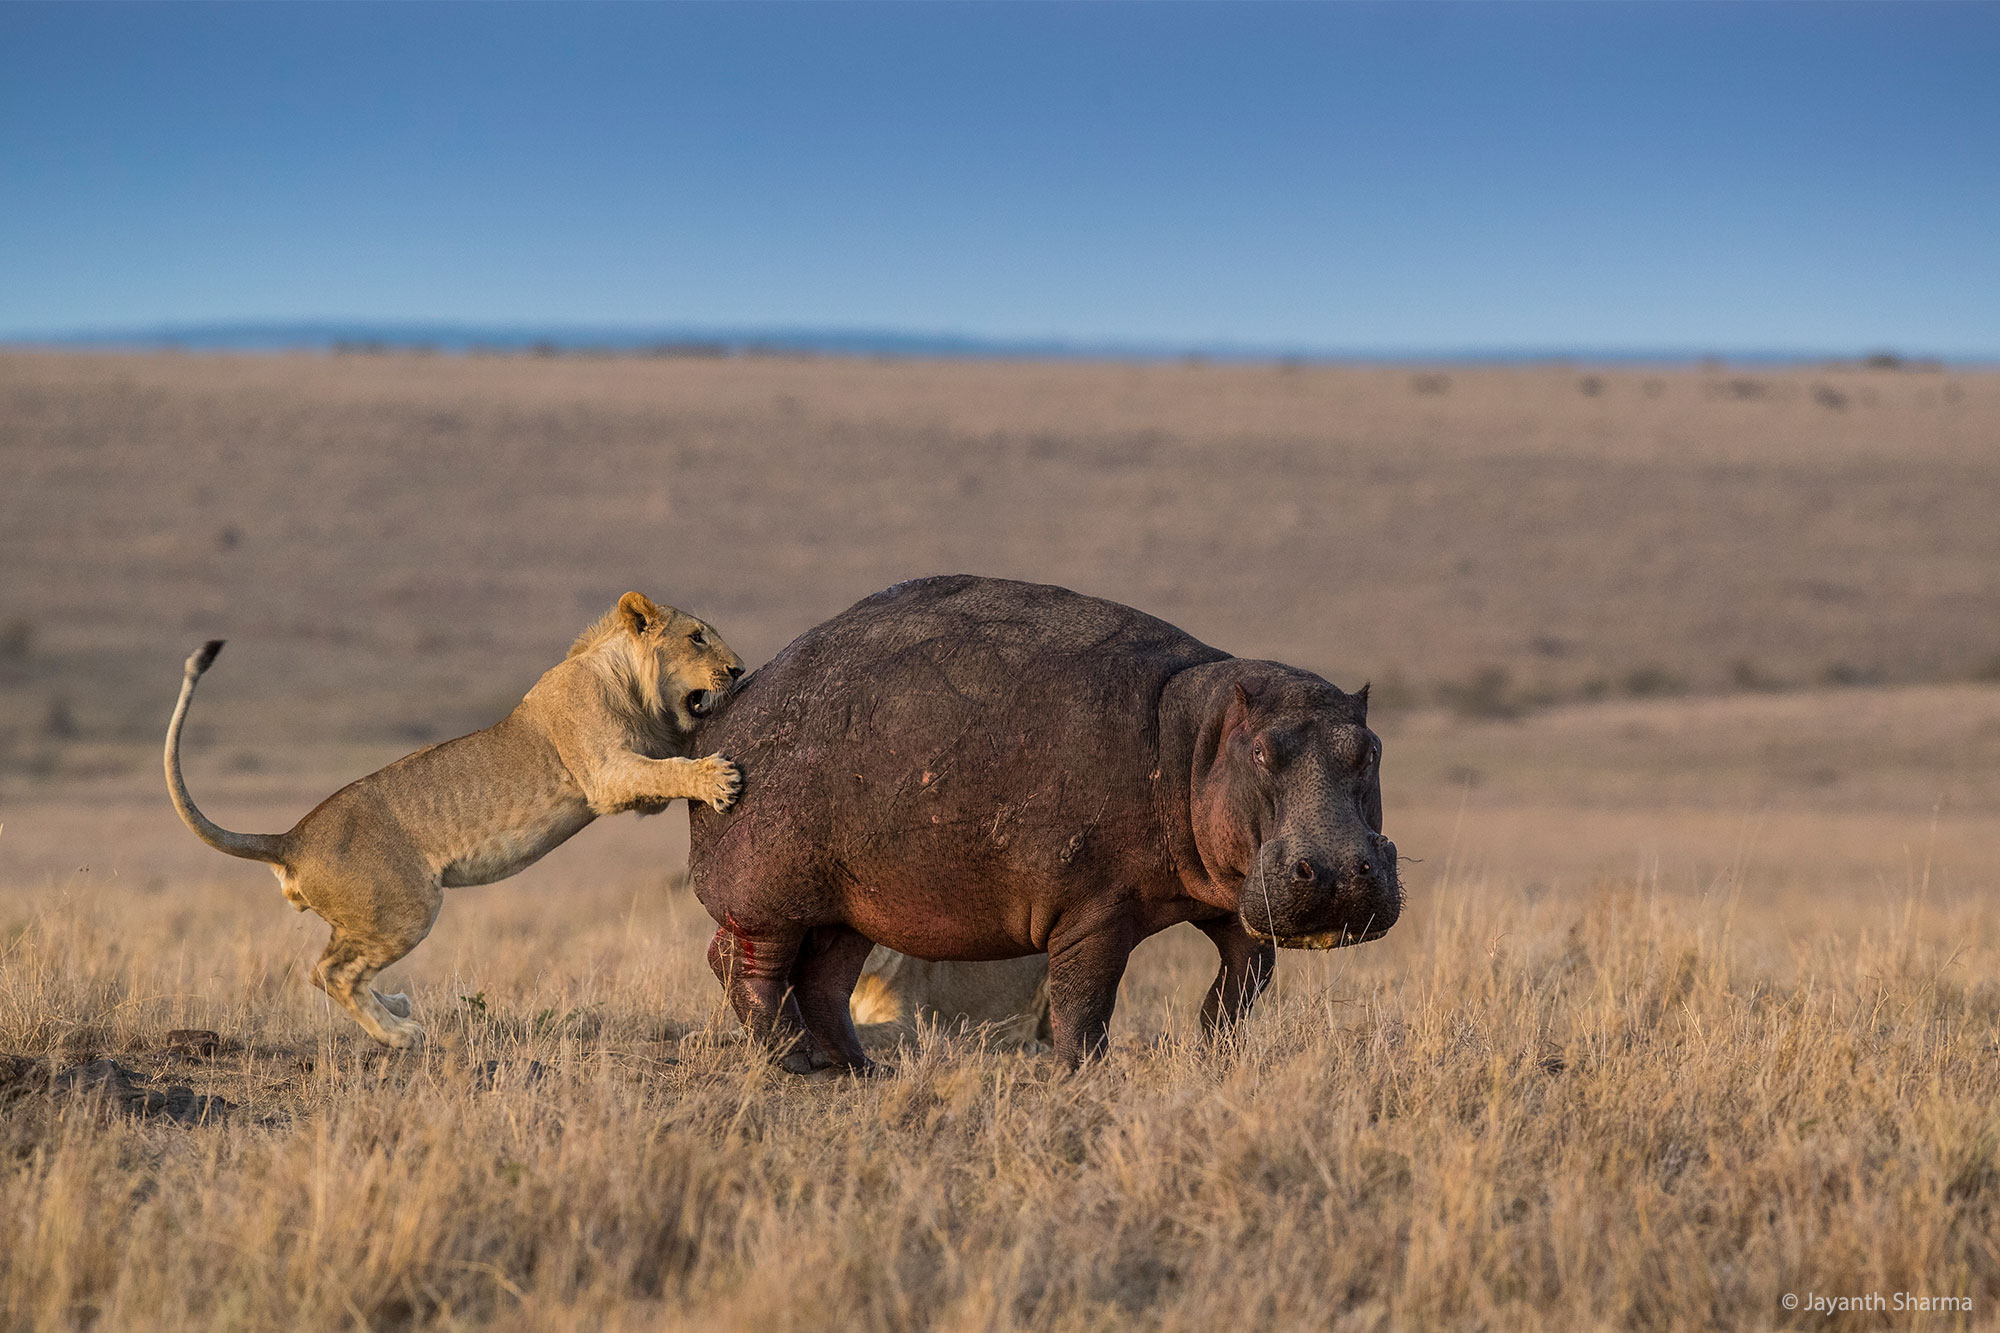 Lion Hunting Hippo, Masai Mara, Kenya. By Jayanth Sharma.